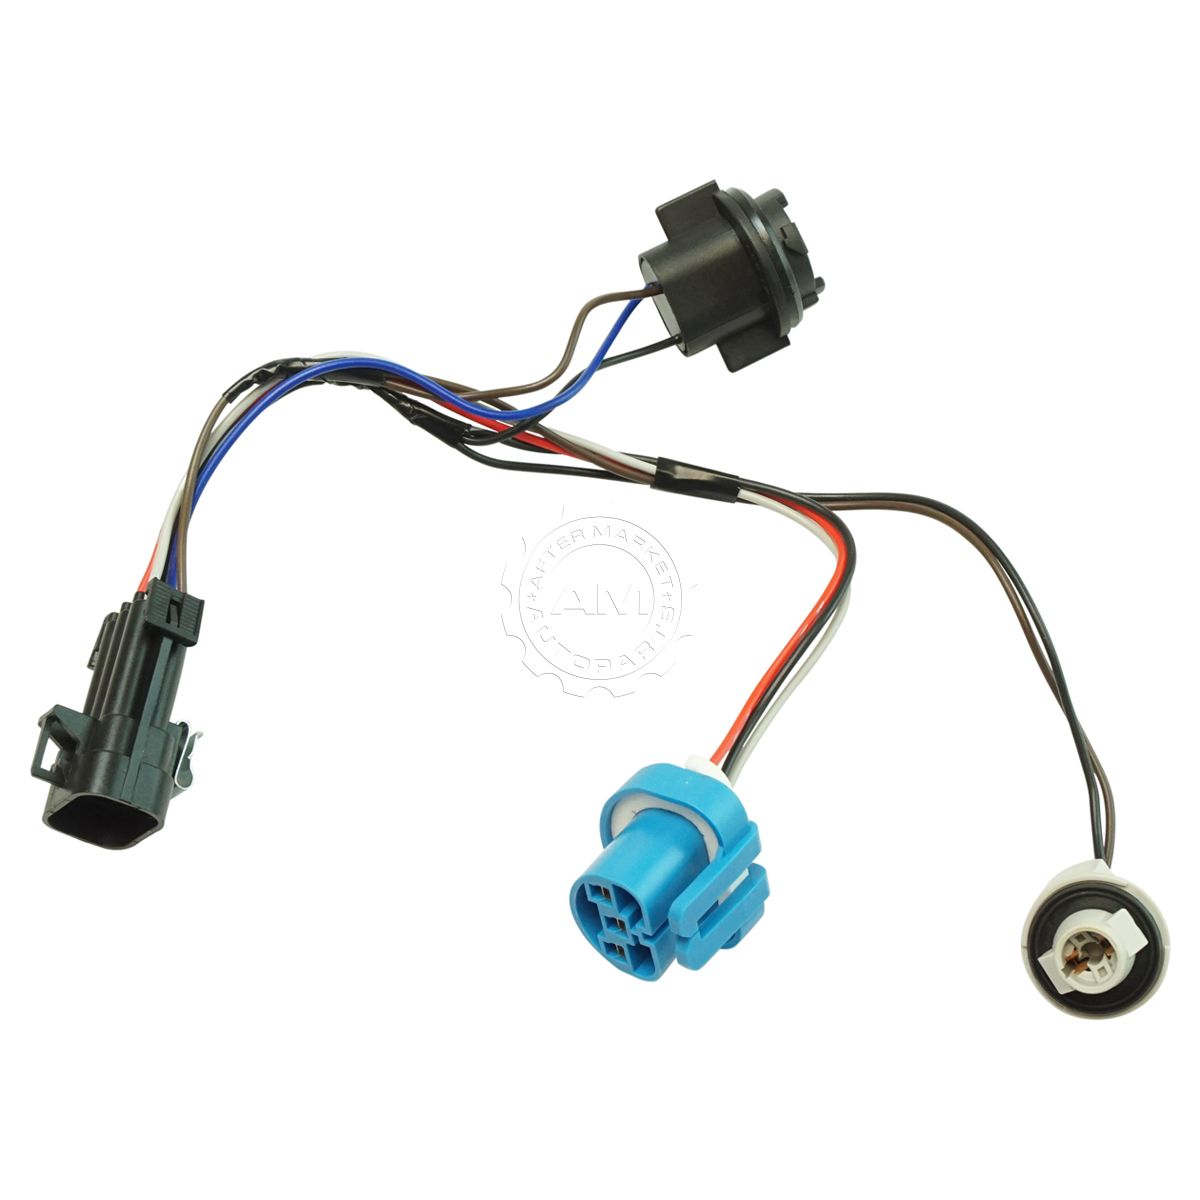 dorman headlight wiring harness or side for chevy cobalt pontiac g5 rh ebay com Chevy Cobalt Transmission Diagram 2008 Chevy Cobalt Starter Wiring